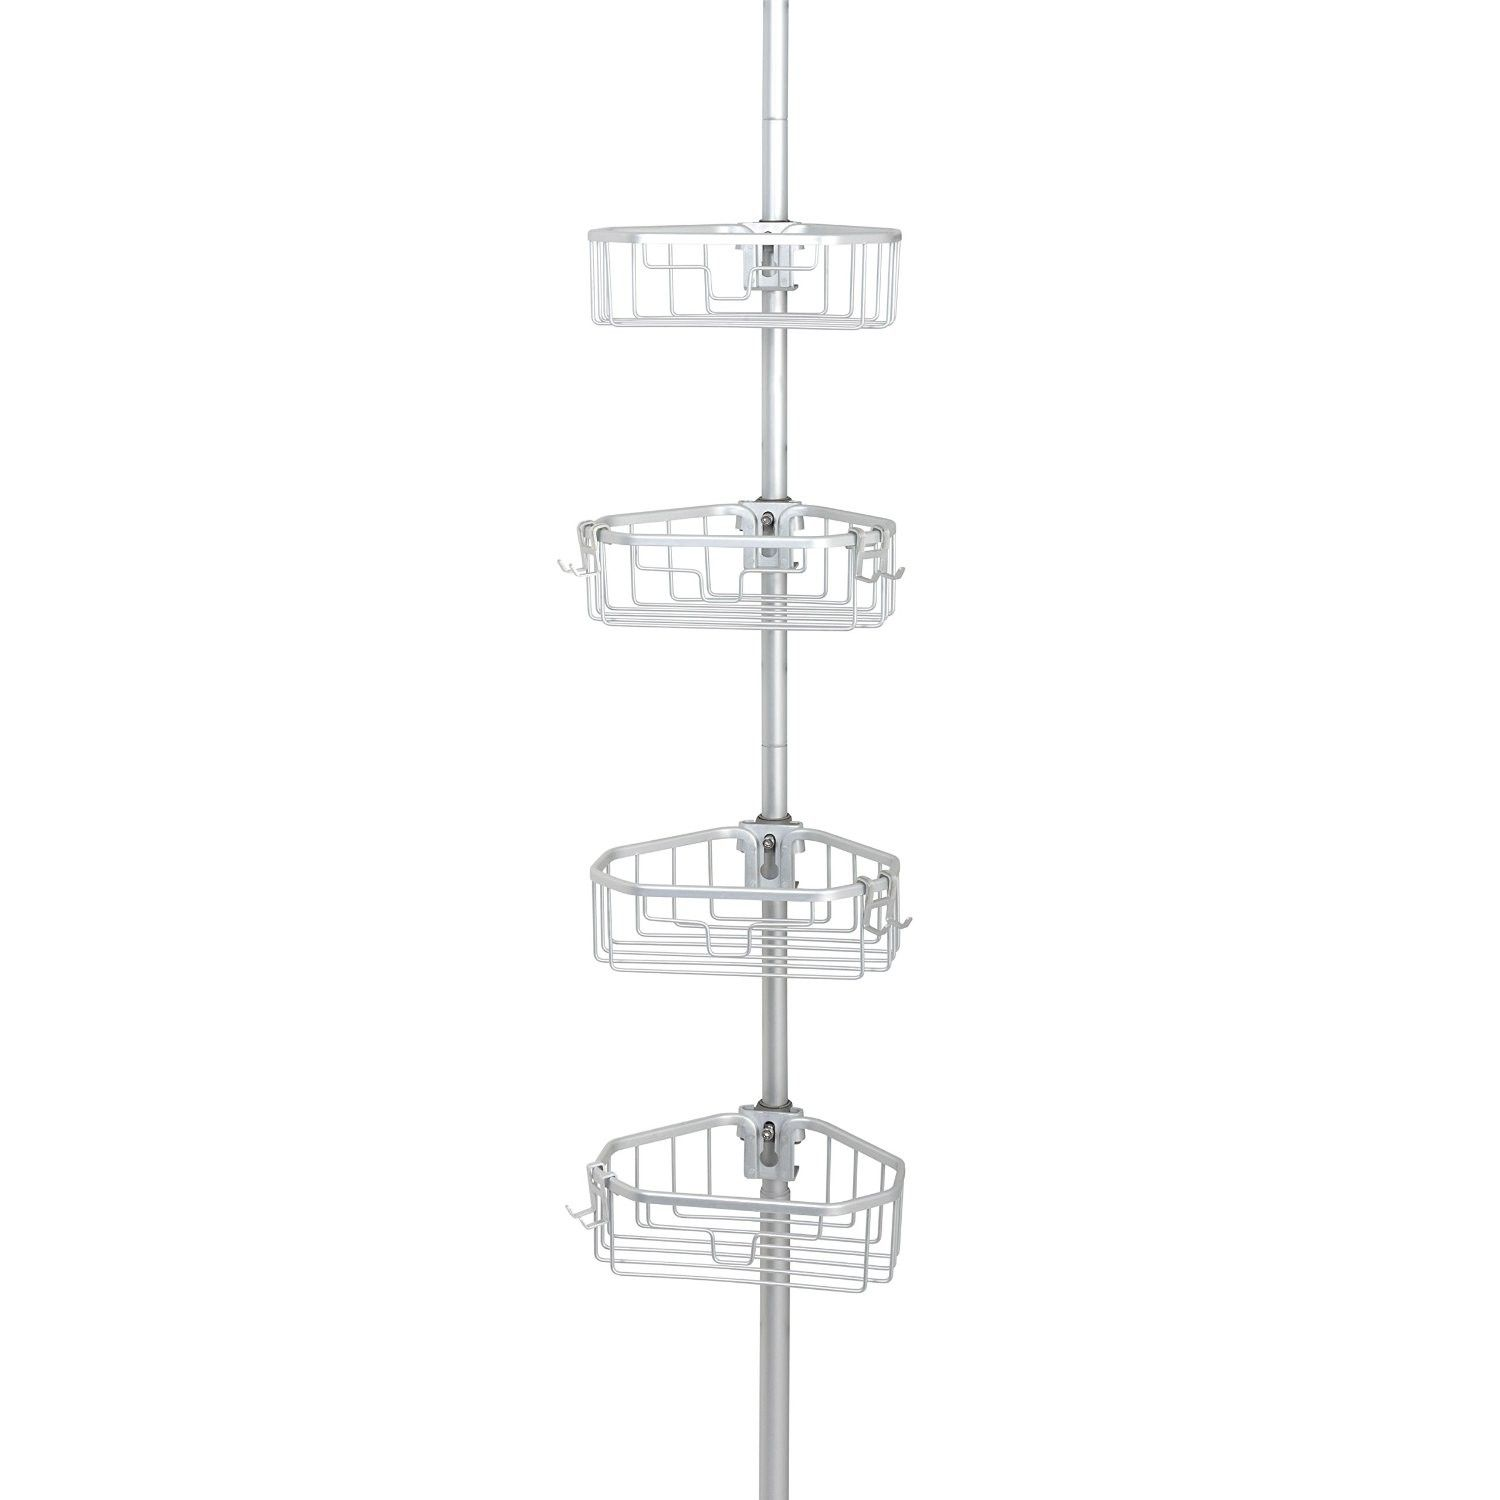 Shower U0026 Bath Tension Pole Caddy